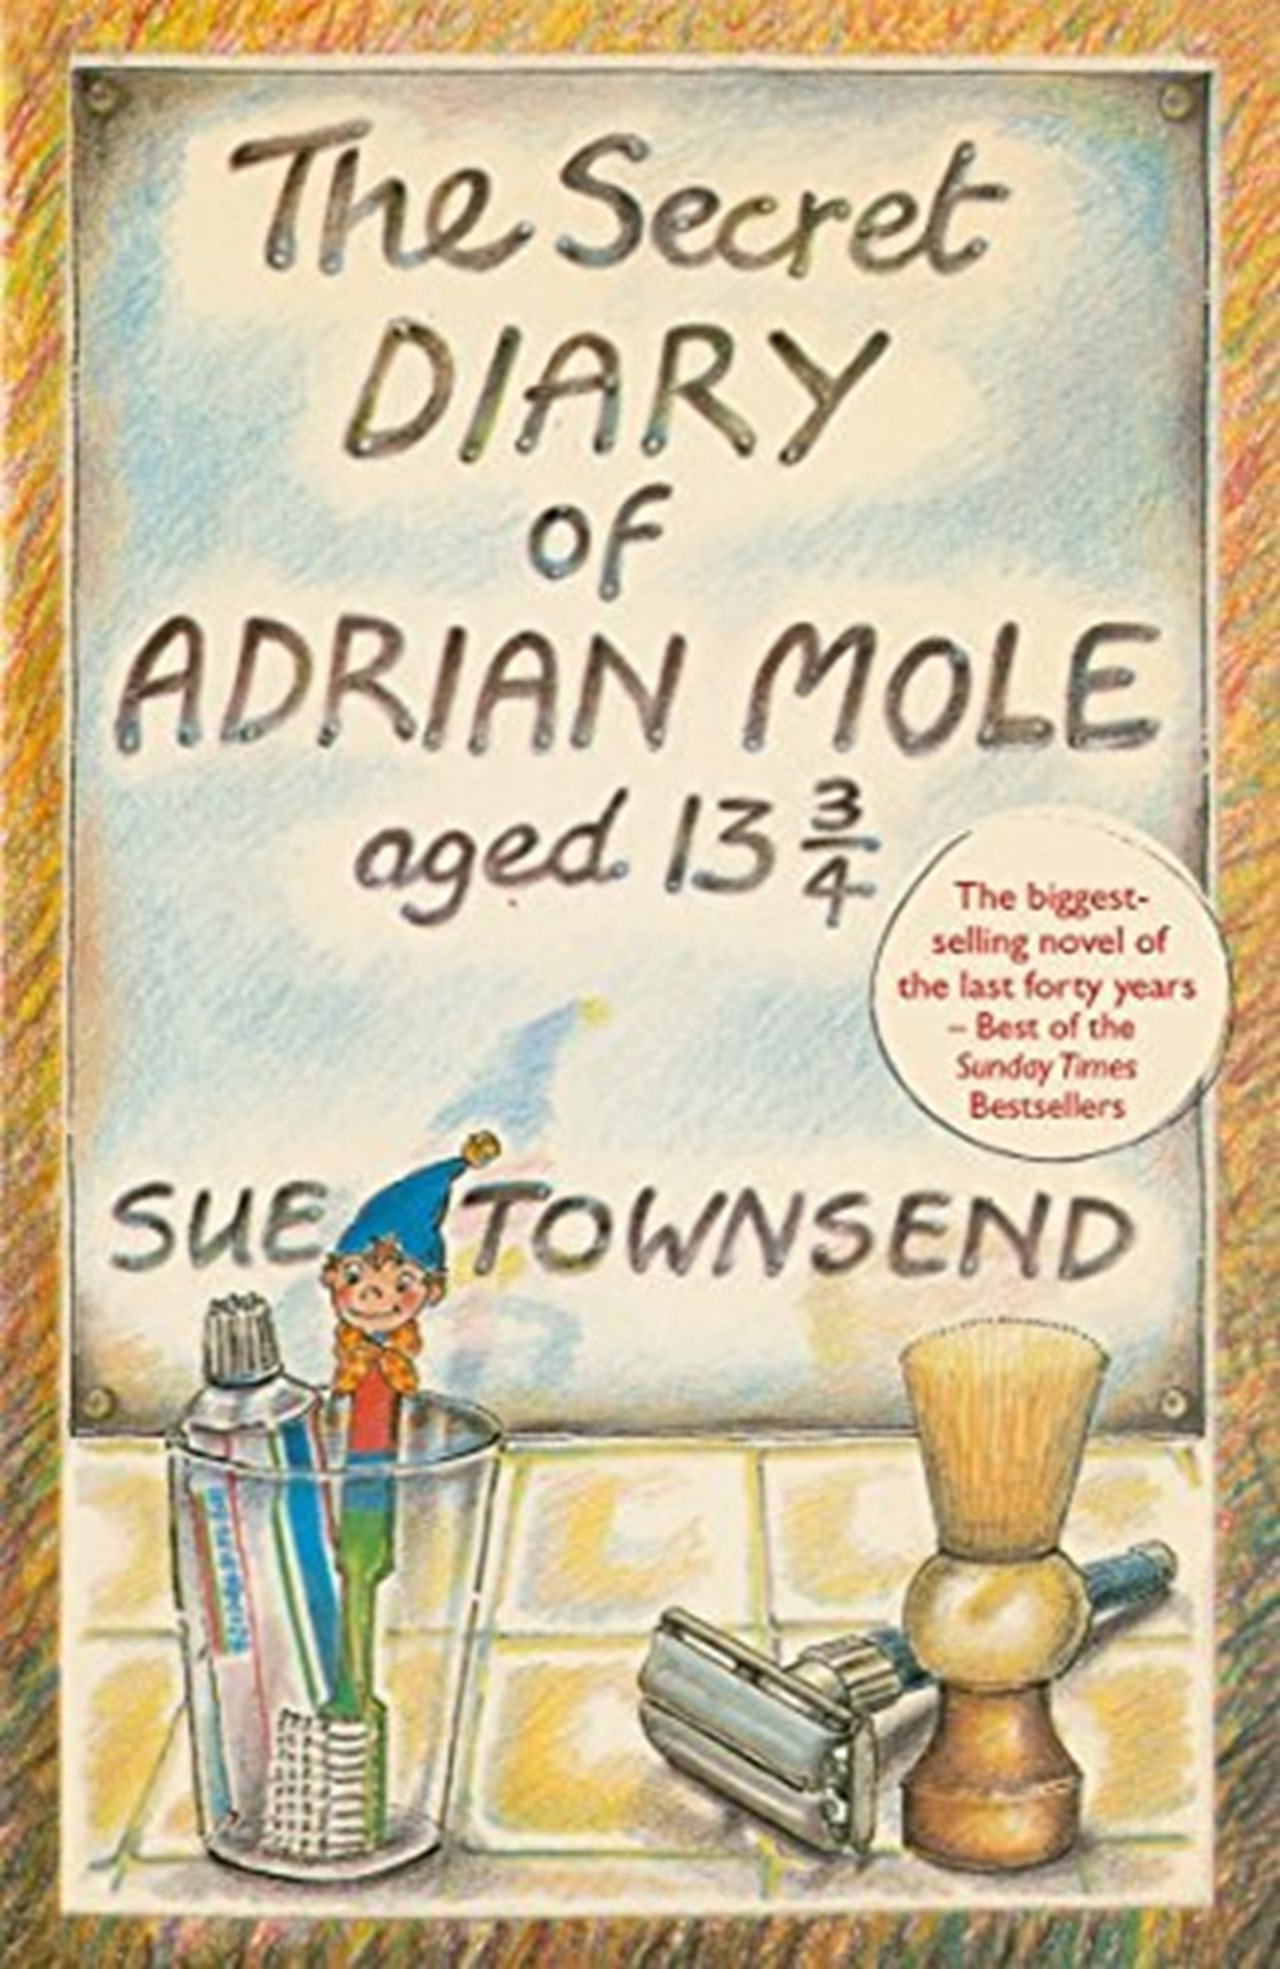 The Secret Diary Of Adrian Mole Aged 13 3/4 - 1